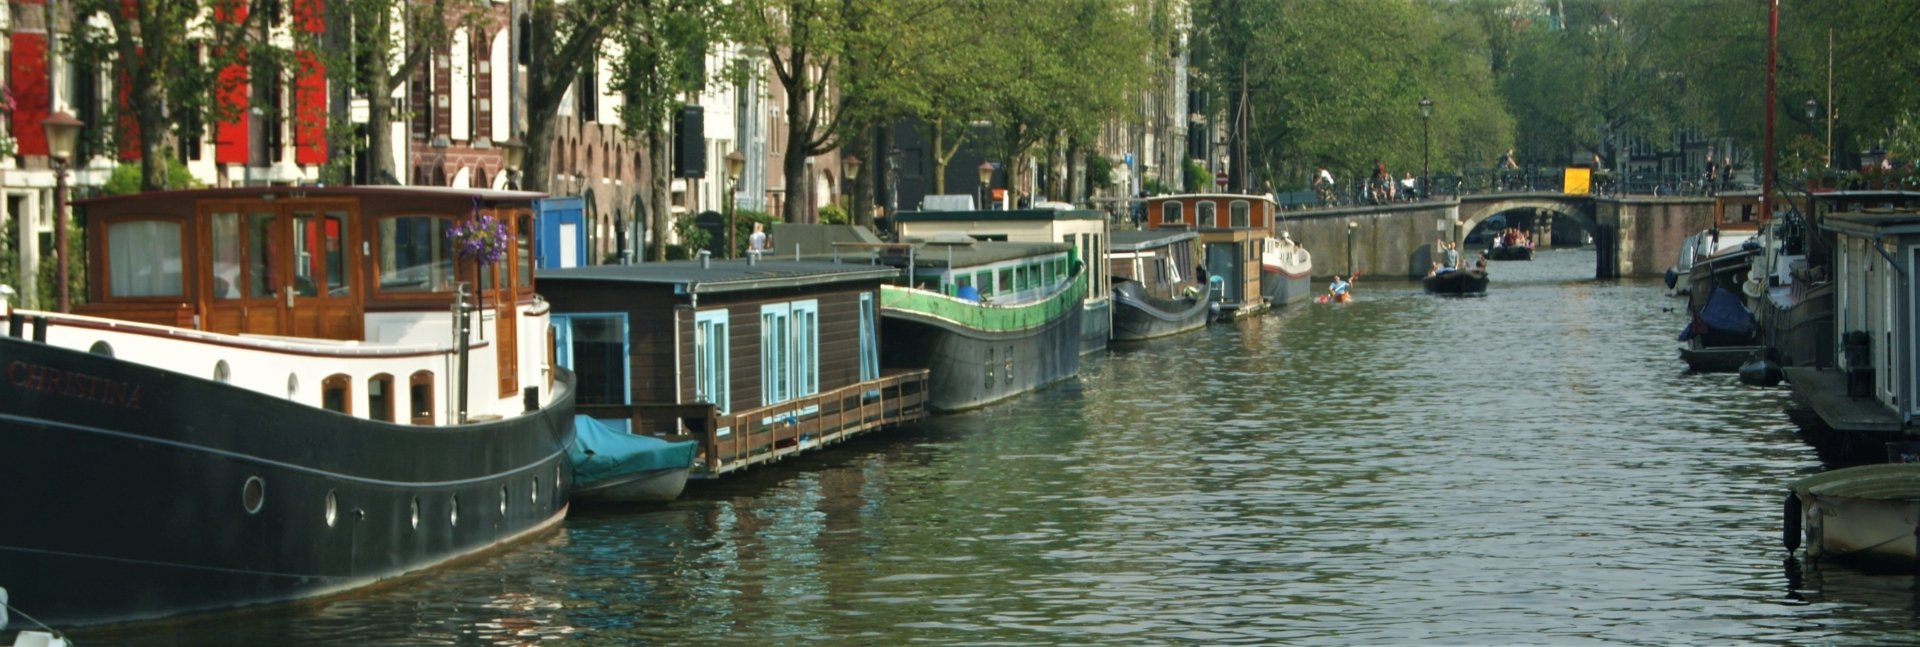 A Houseboat In Amsterdam 9 Useful Tips